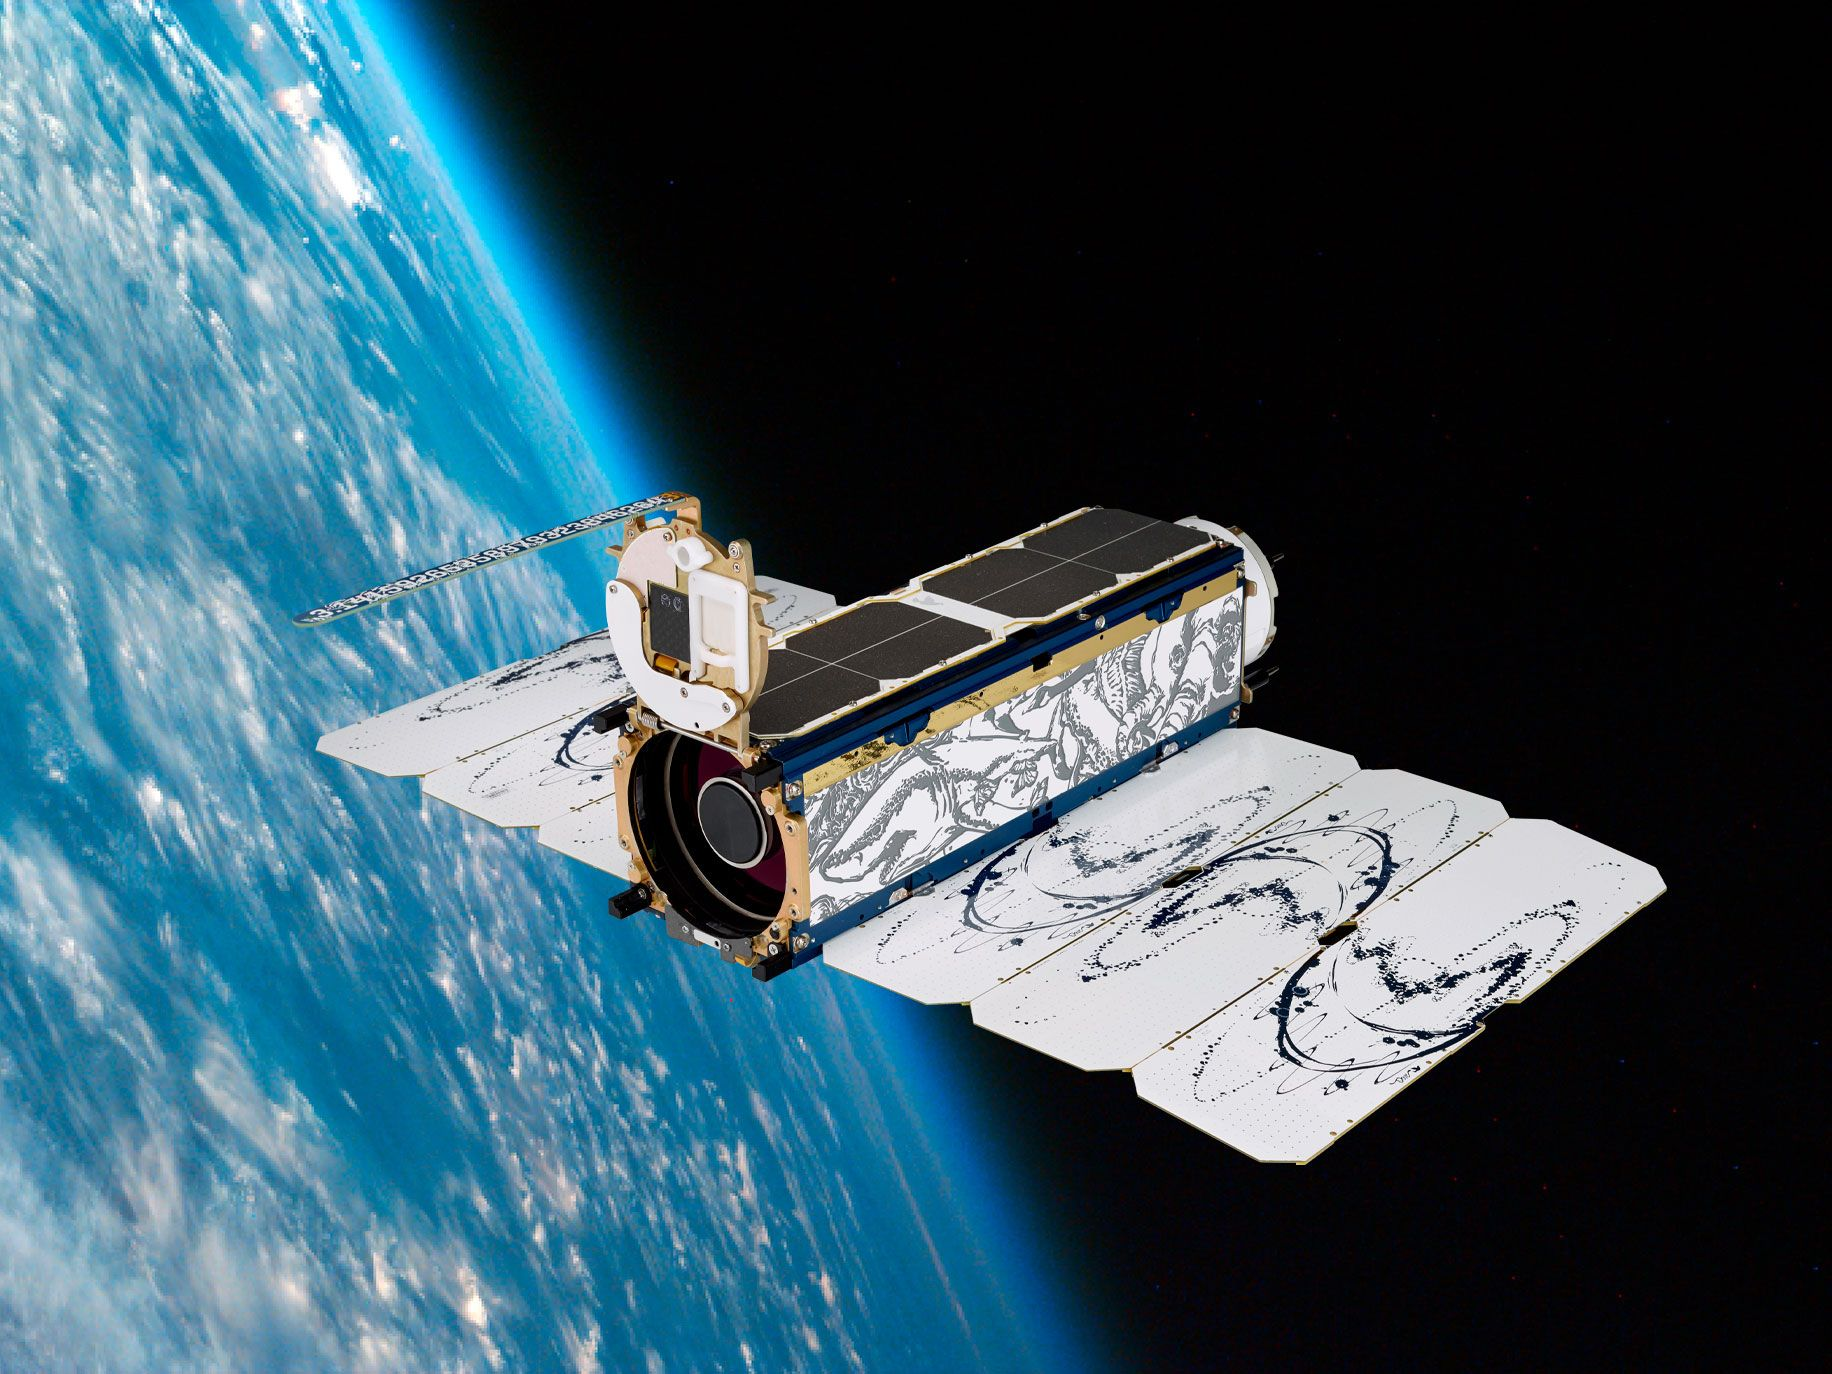 Planet Labs 48 Earth-Imaging satellites will hitch a ride aboard SpaceX's Transporter-1 Mission